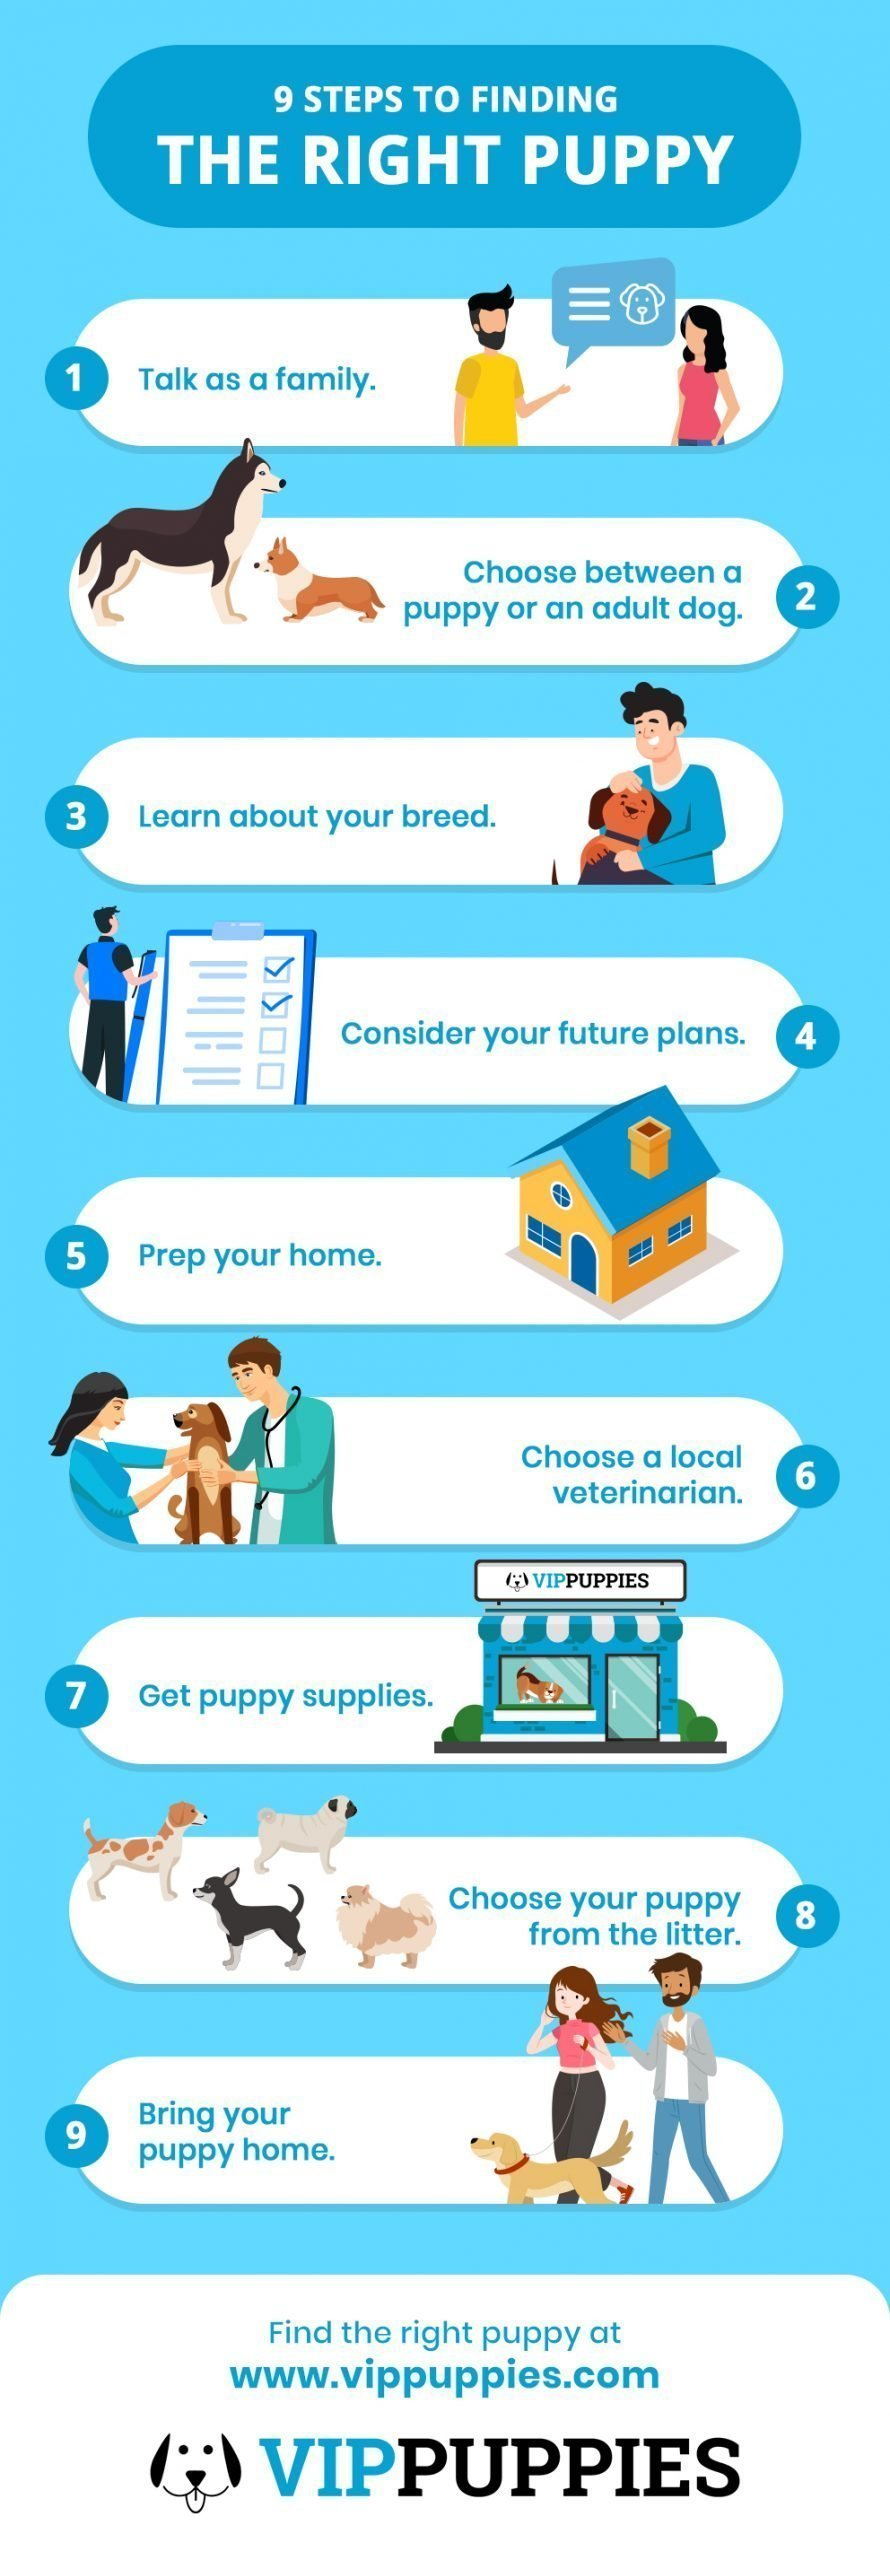 9 Steps to Finding the Right Puppy